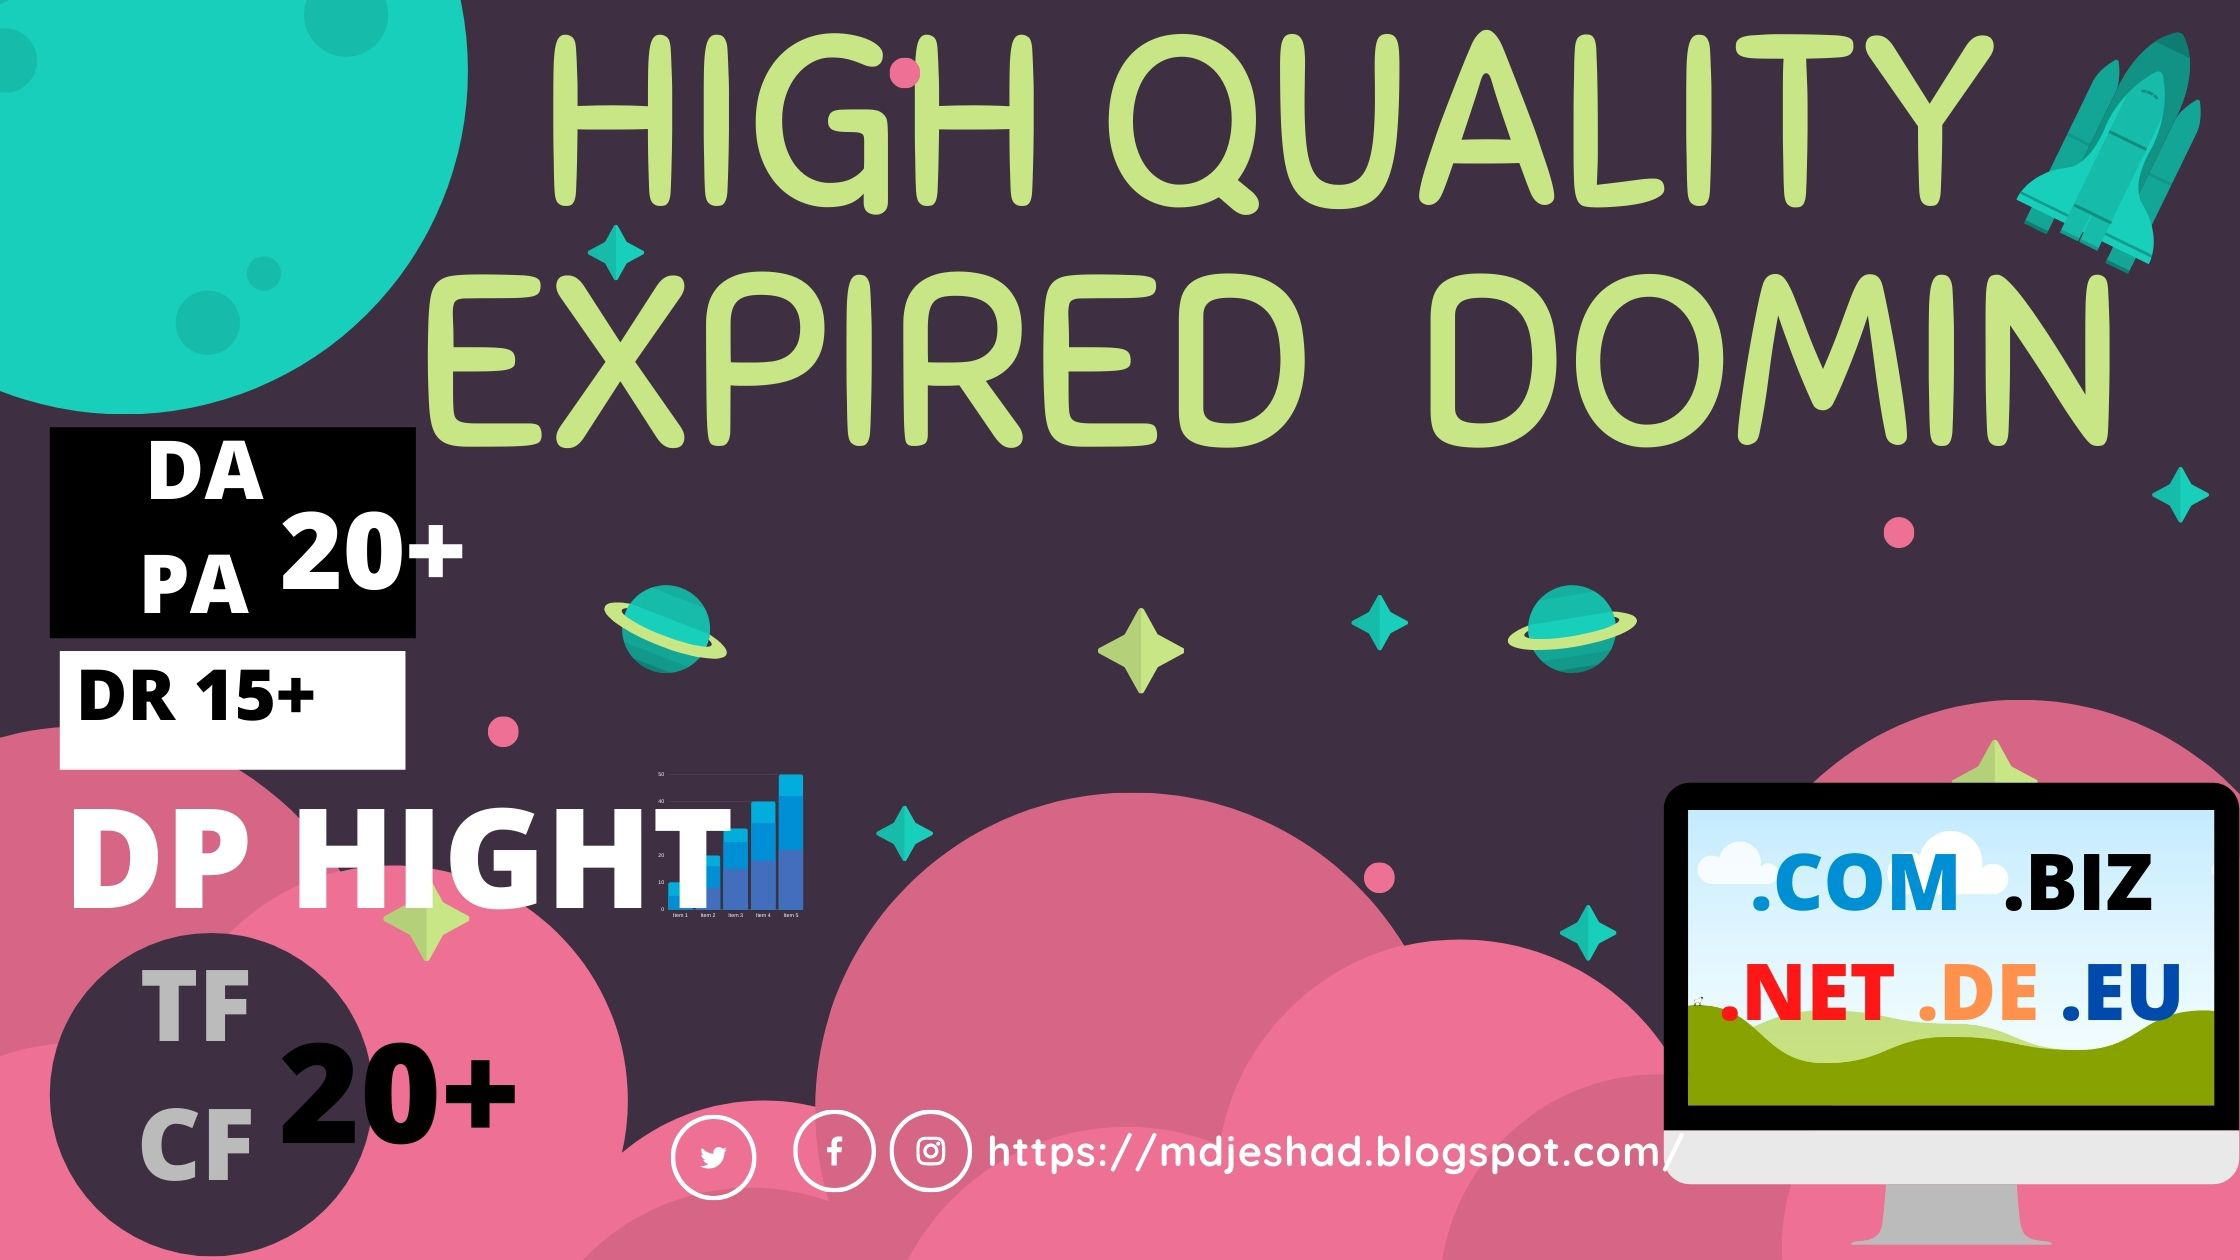 I will find guaranteed niche related high quality expired domain